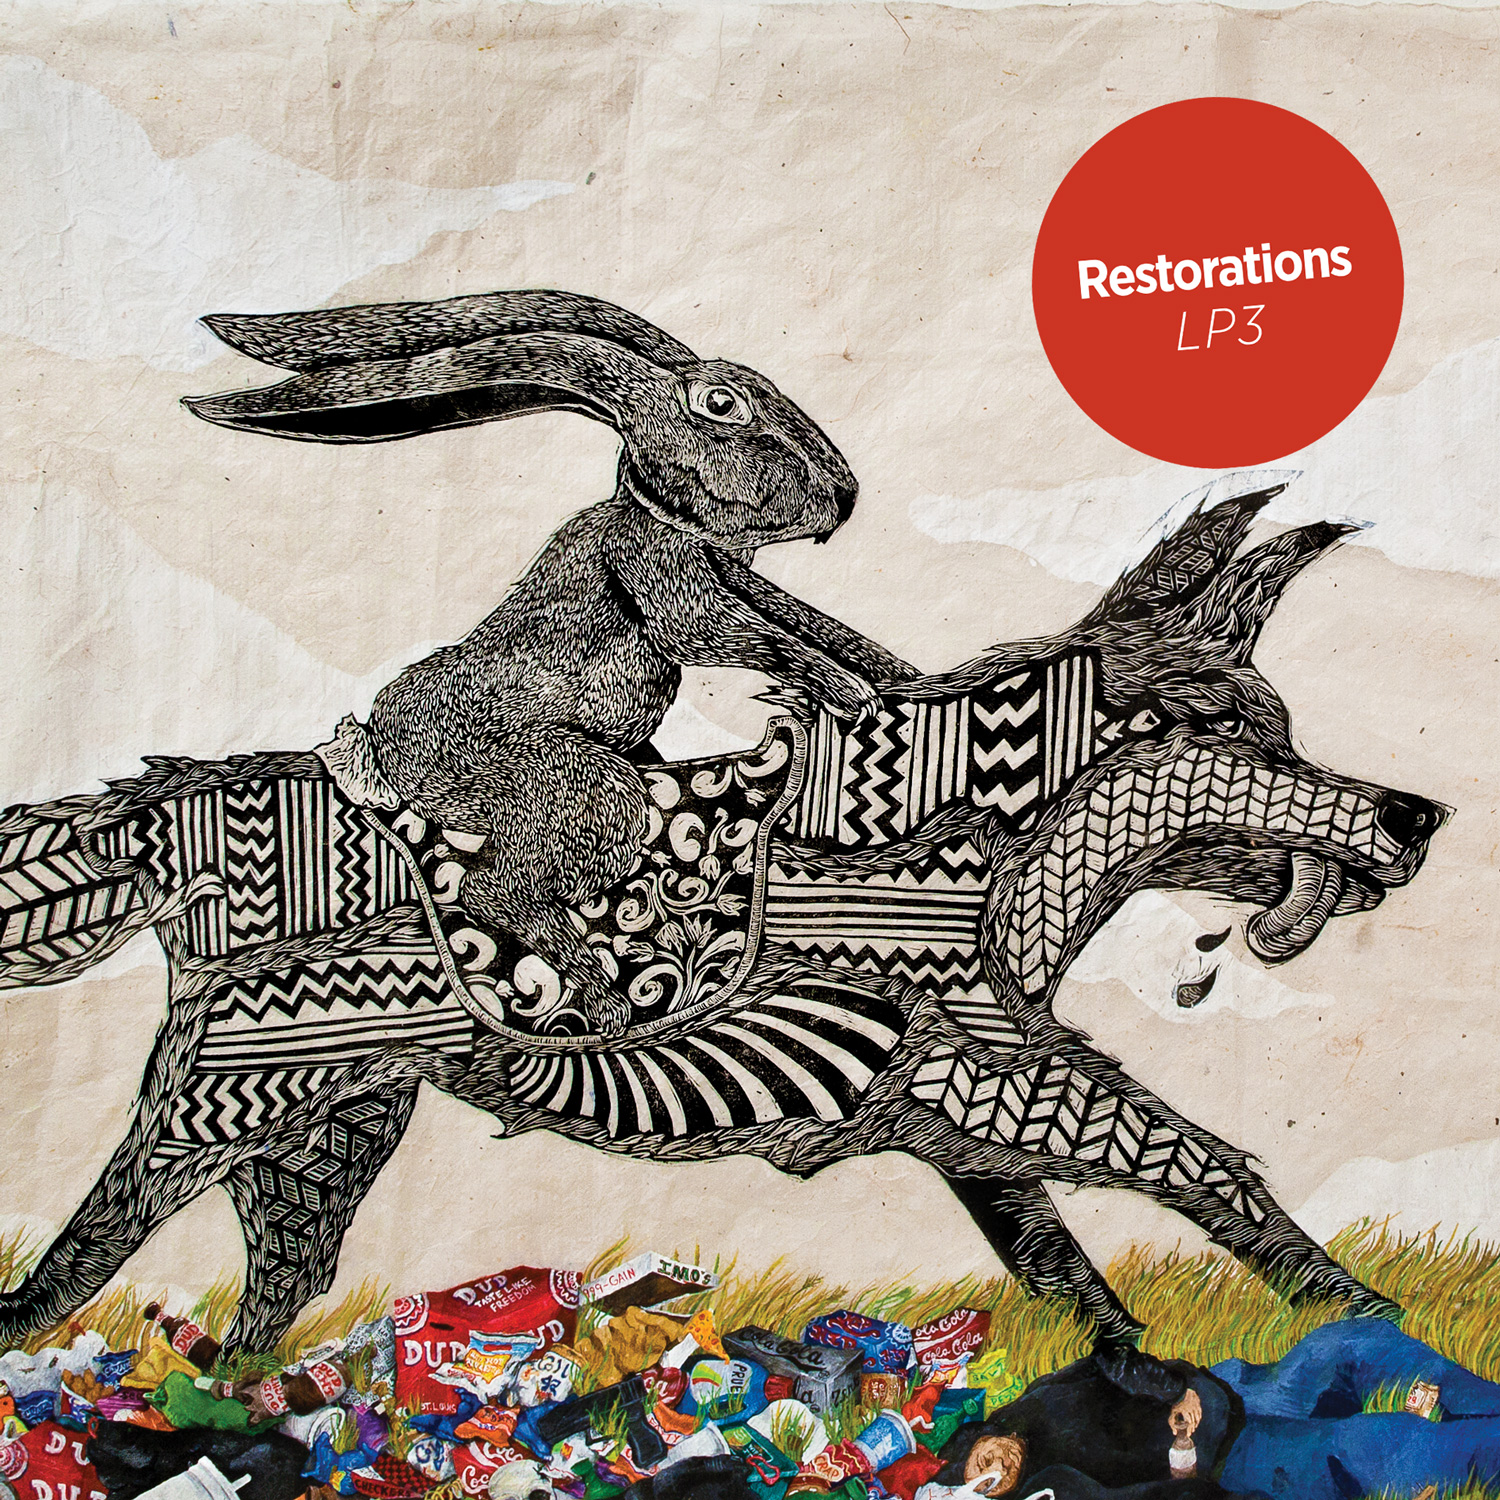 restorationslp3 Top 50 Songs of 2014